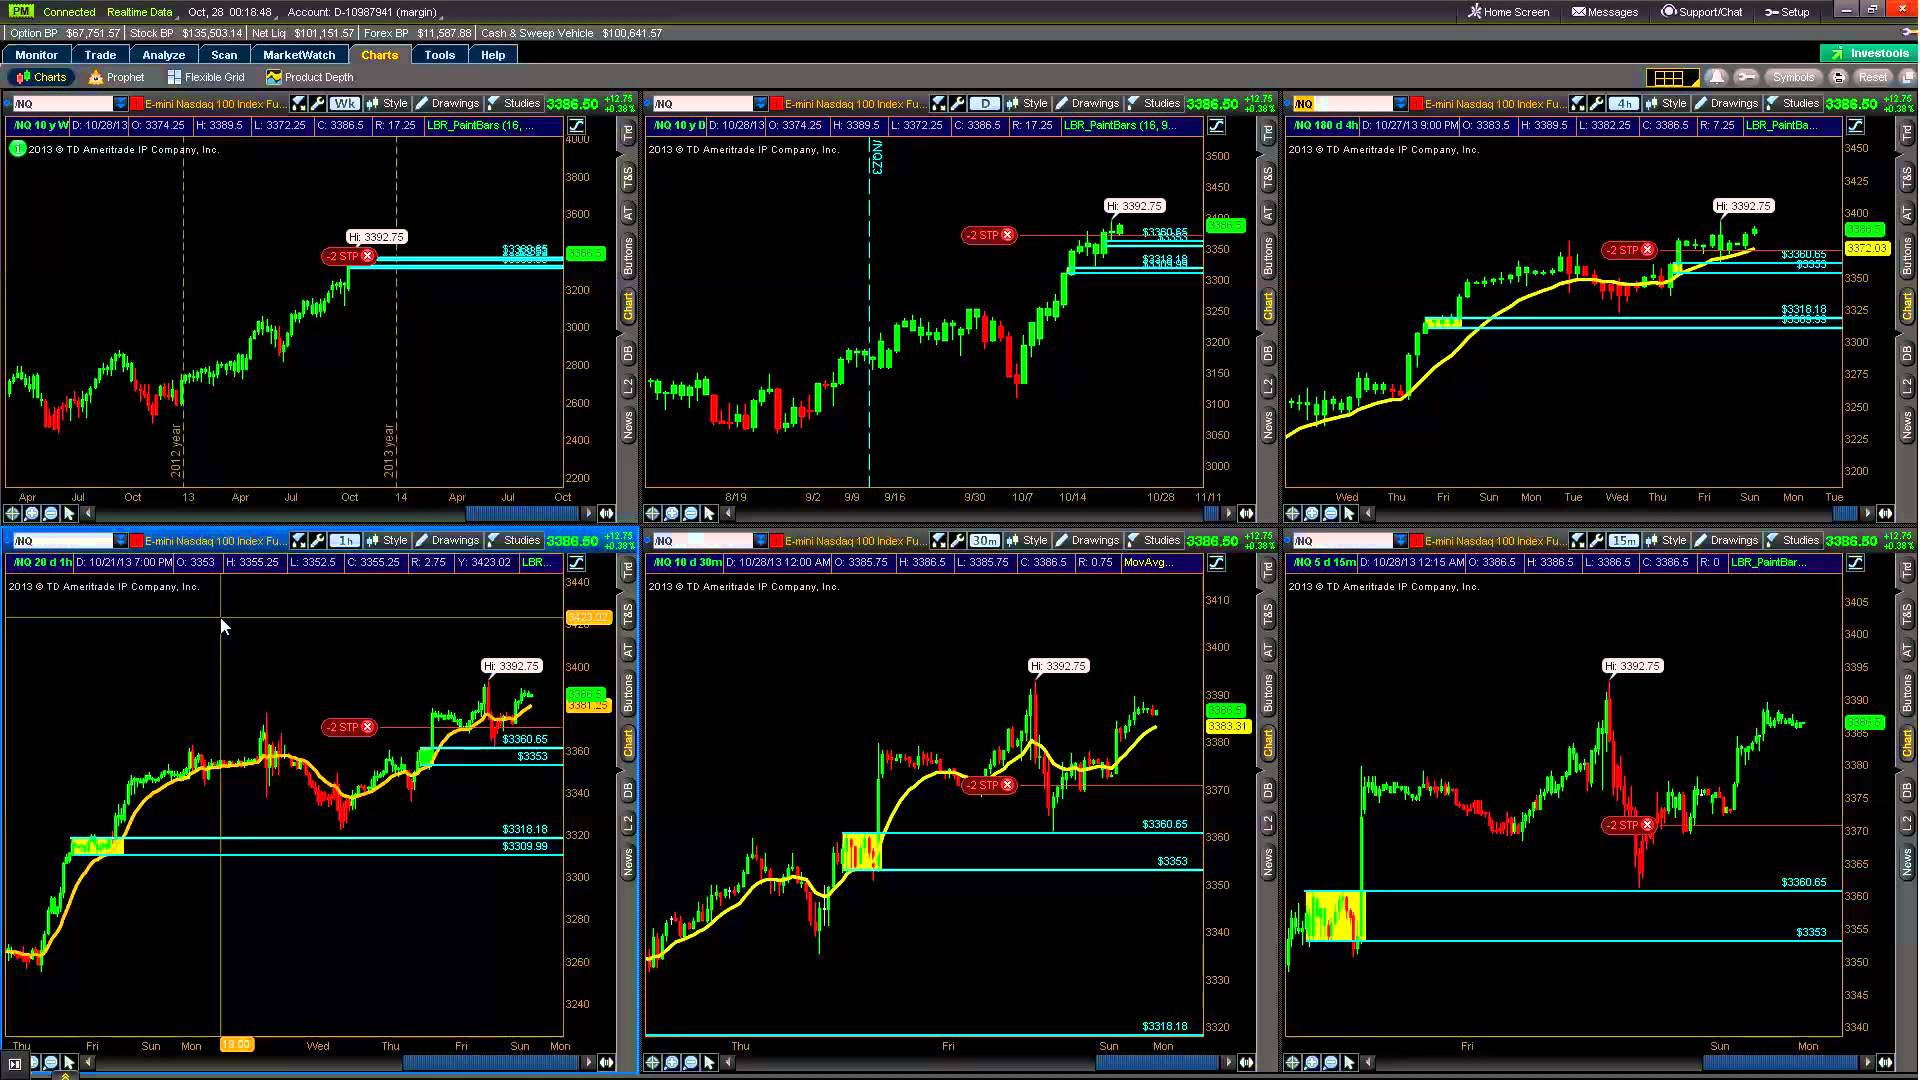 Swing Trade Stock Index Futures NQ Demand Excess Supply on 1 hr. Chart October 25, 2013